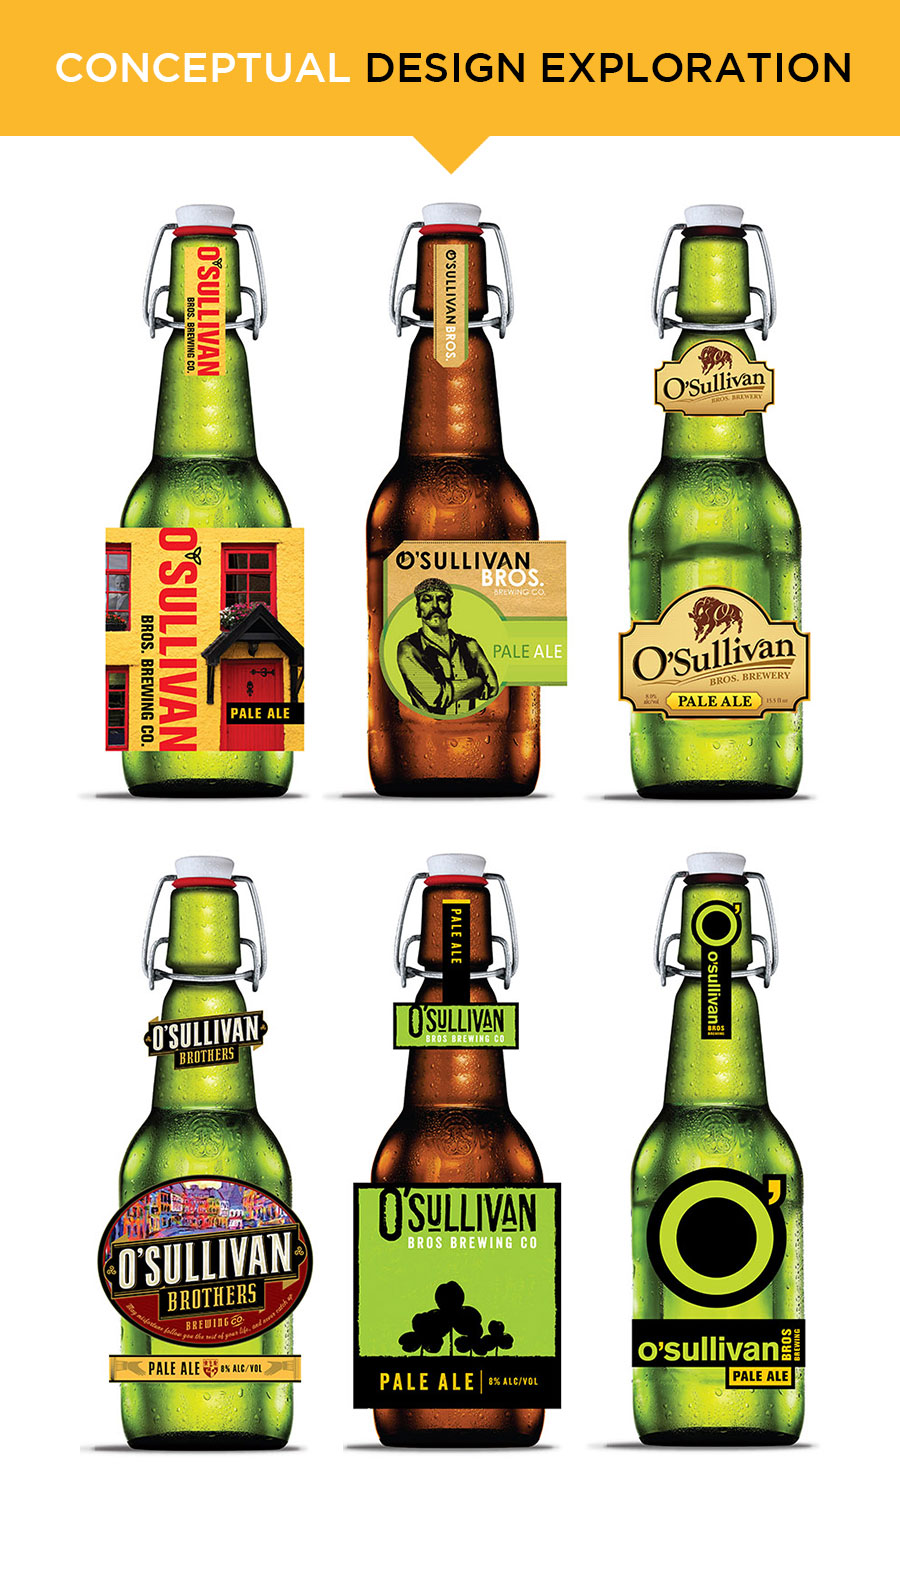 O'Sullivan Brothers beer label design